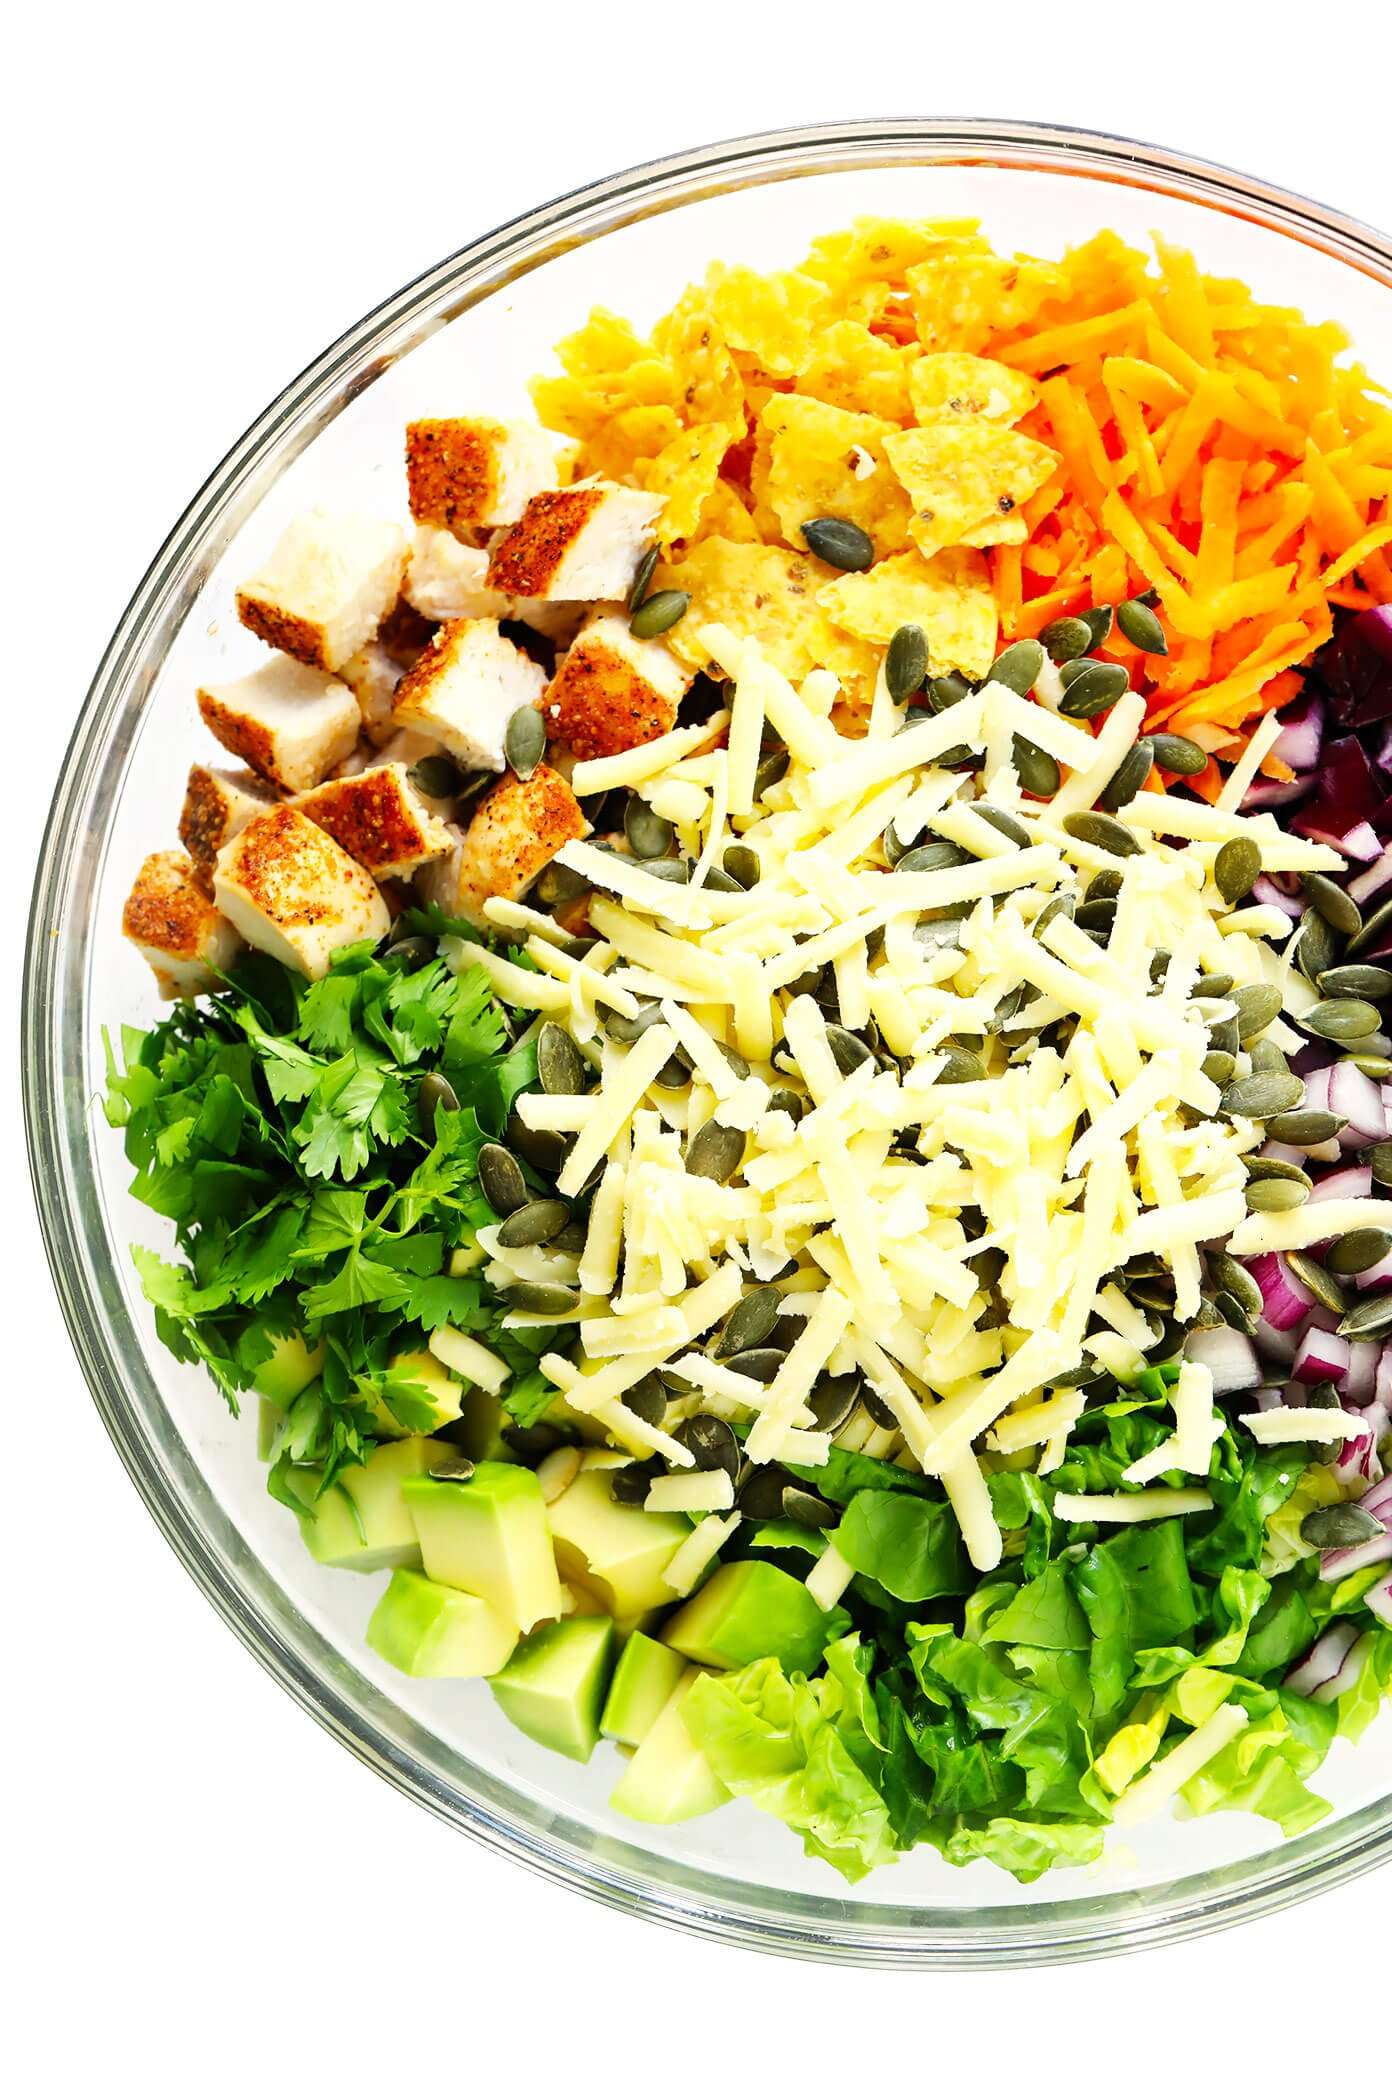 Bowl of Ingredients for Chipotle Chopped Salad -- Chicken, Tortilla Chips, Carrots, Cabbage, Red Onion, Romaine Lettuce, Cilantro, Baked Chicken, Cheddar Cheese and Pepitas